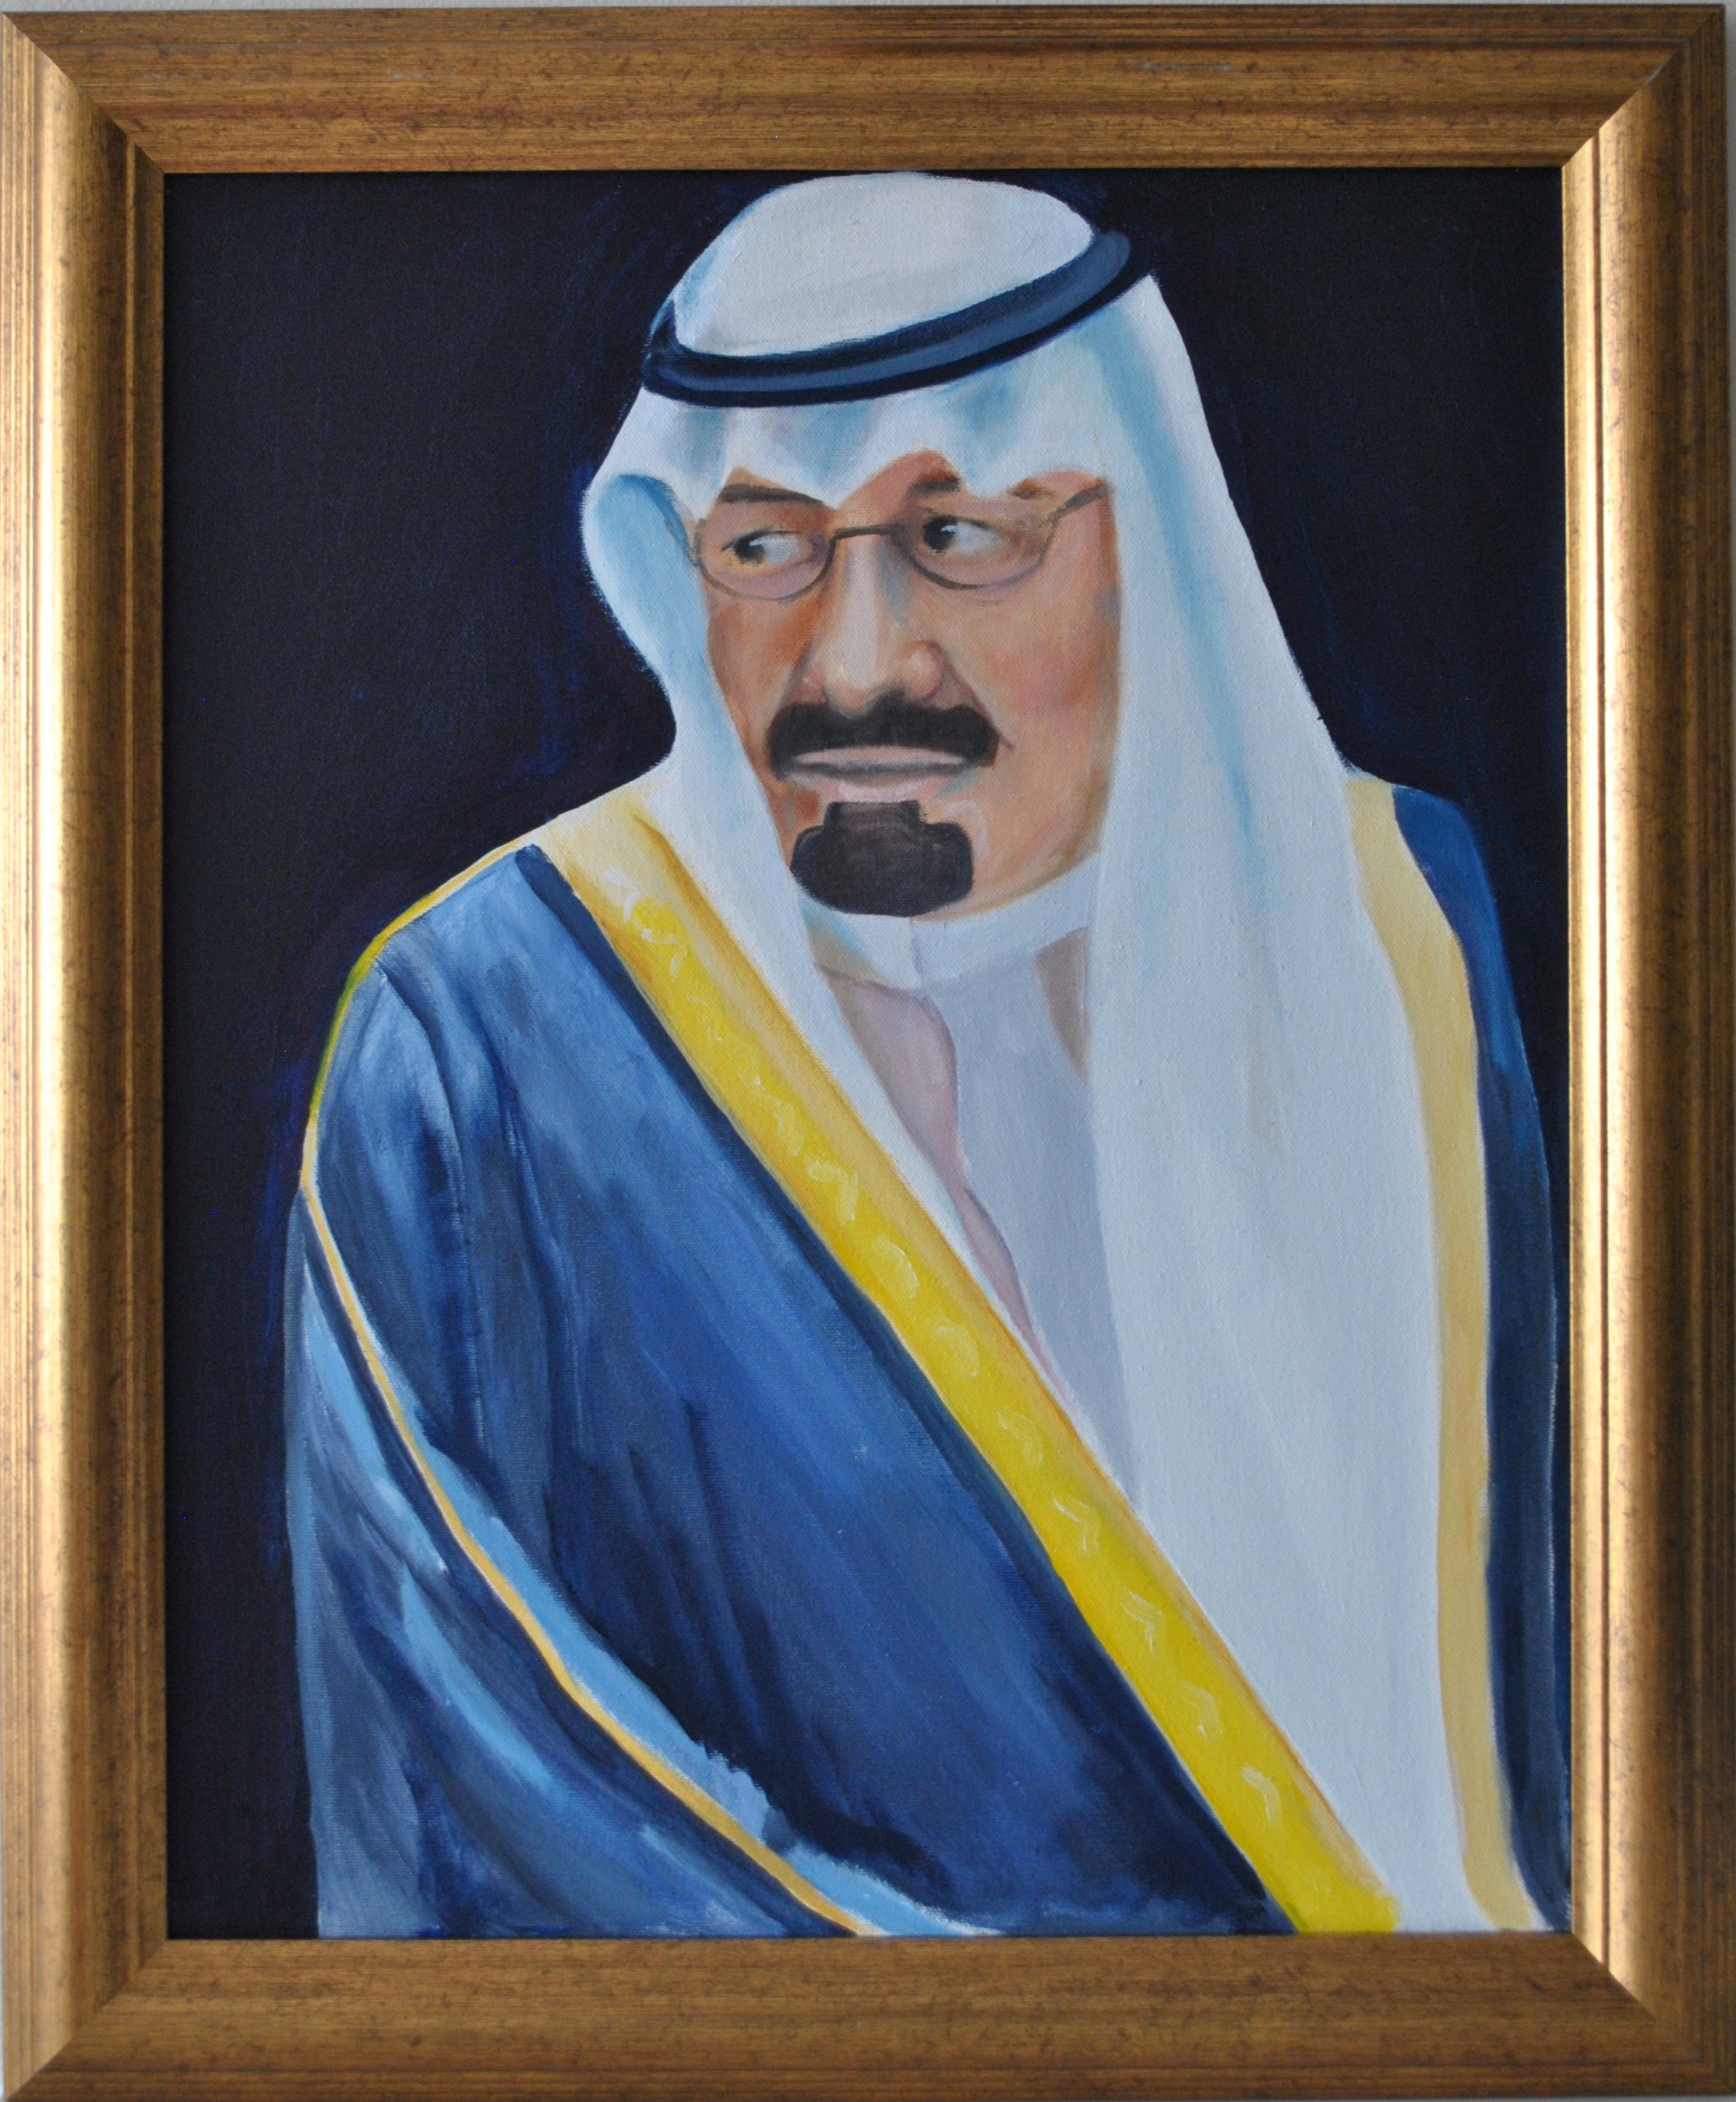 King Abdullah of KSA